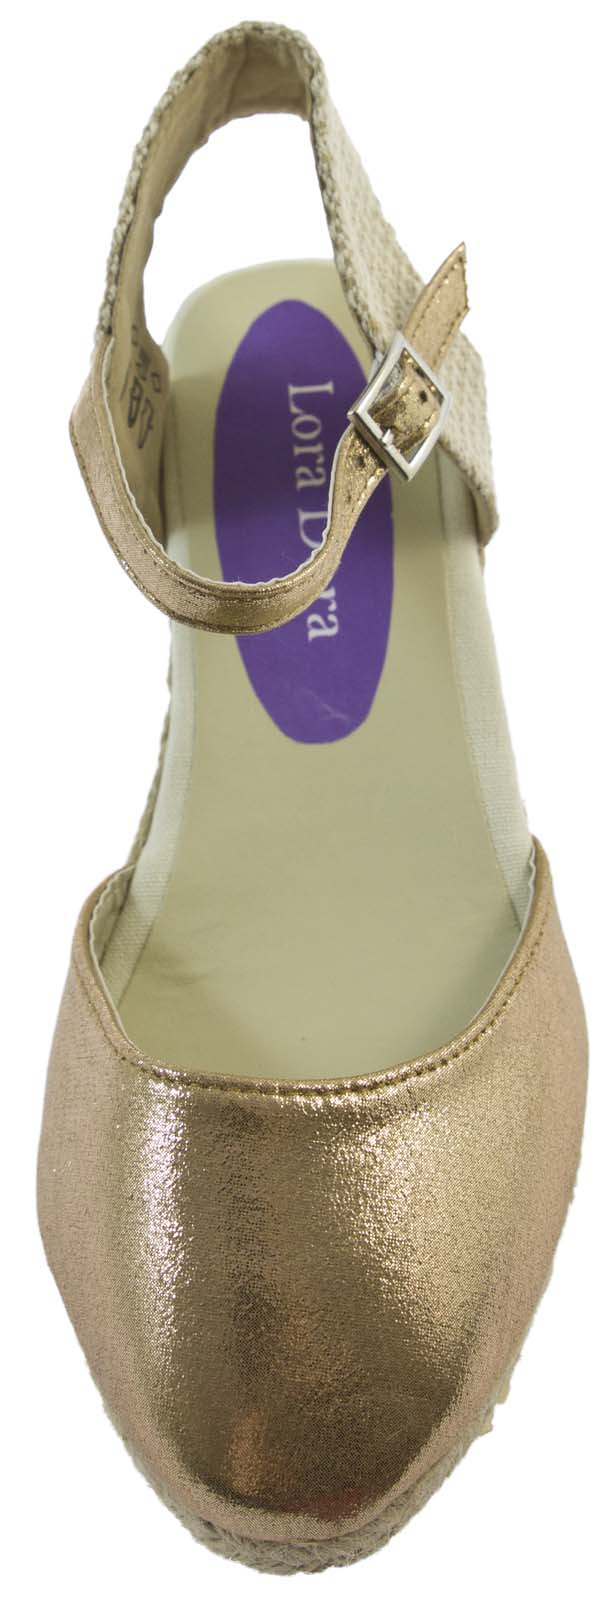 Womens Strappy Hessian Wedge Sandals Platforms Full Toe Ladies Summer Shoes Size